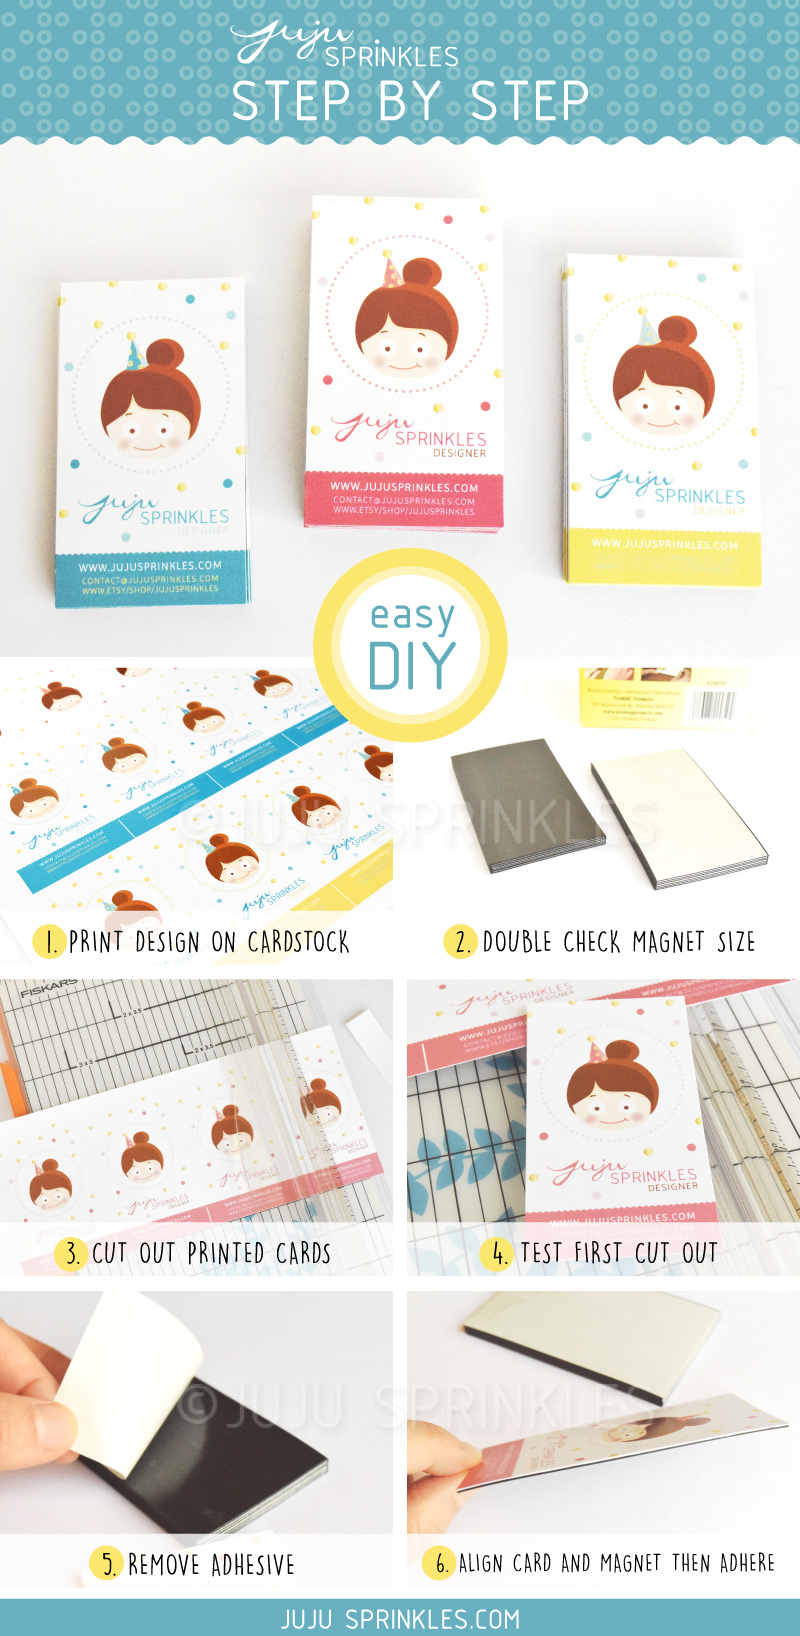 DIY Business Card Magnets – Juju Sprinkles